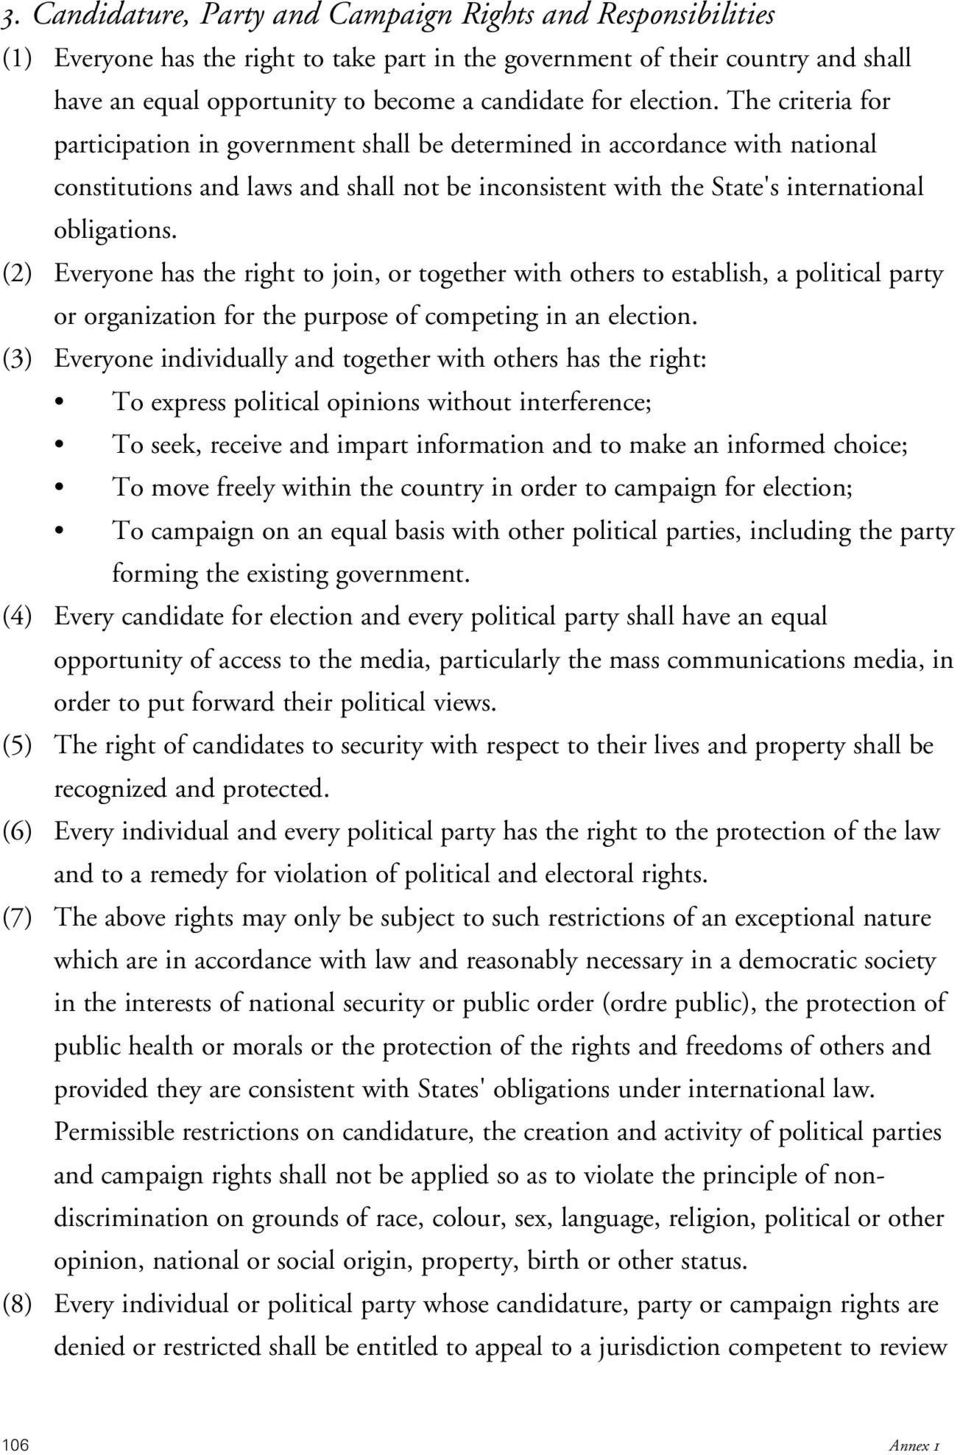 (2) Everyone has the right to join, or together with others to establish, a political party or organization for the purpose of competing in an election.